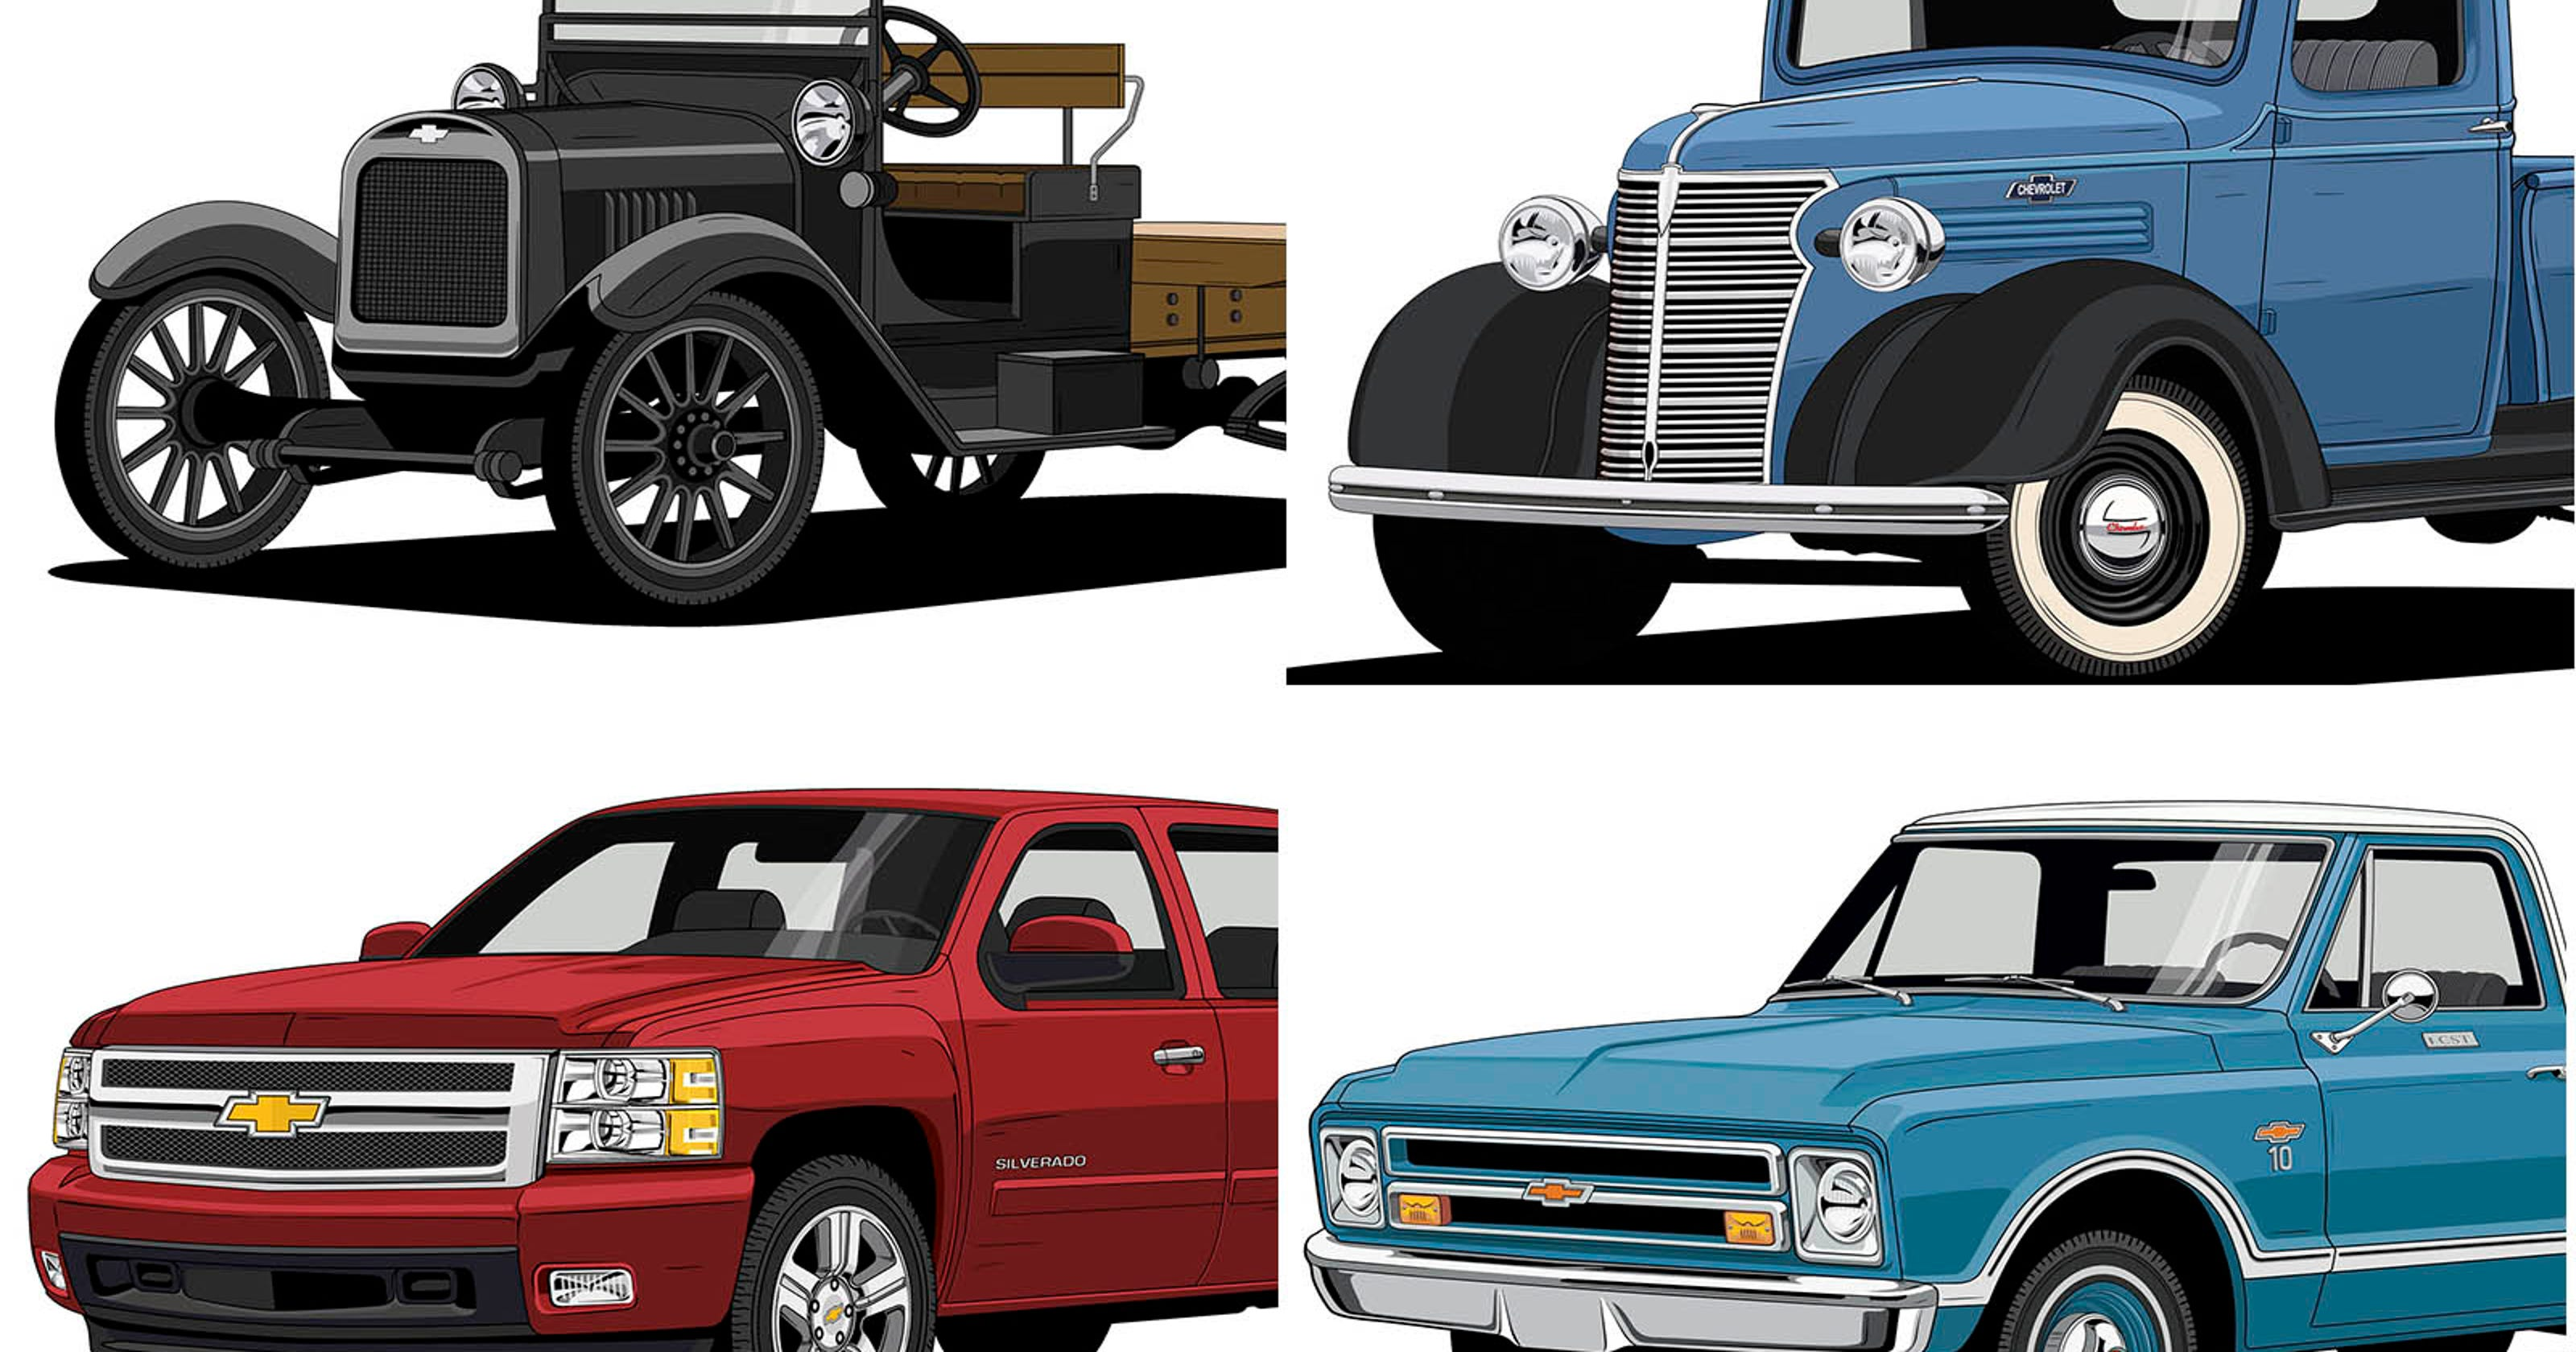 Chevy Trucks Celebrate 100 Years Shaping How Americans Work And Travel 1942 Truck Seat